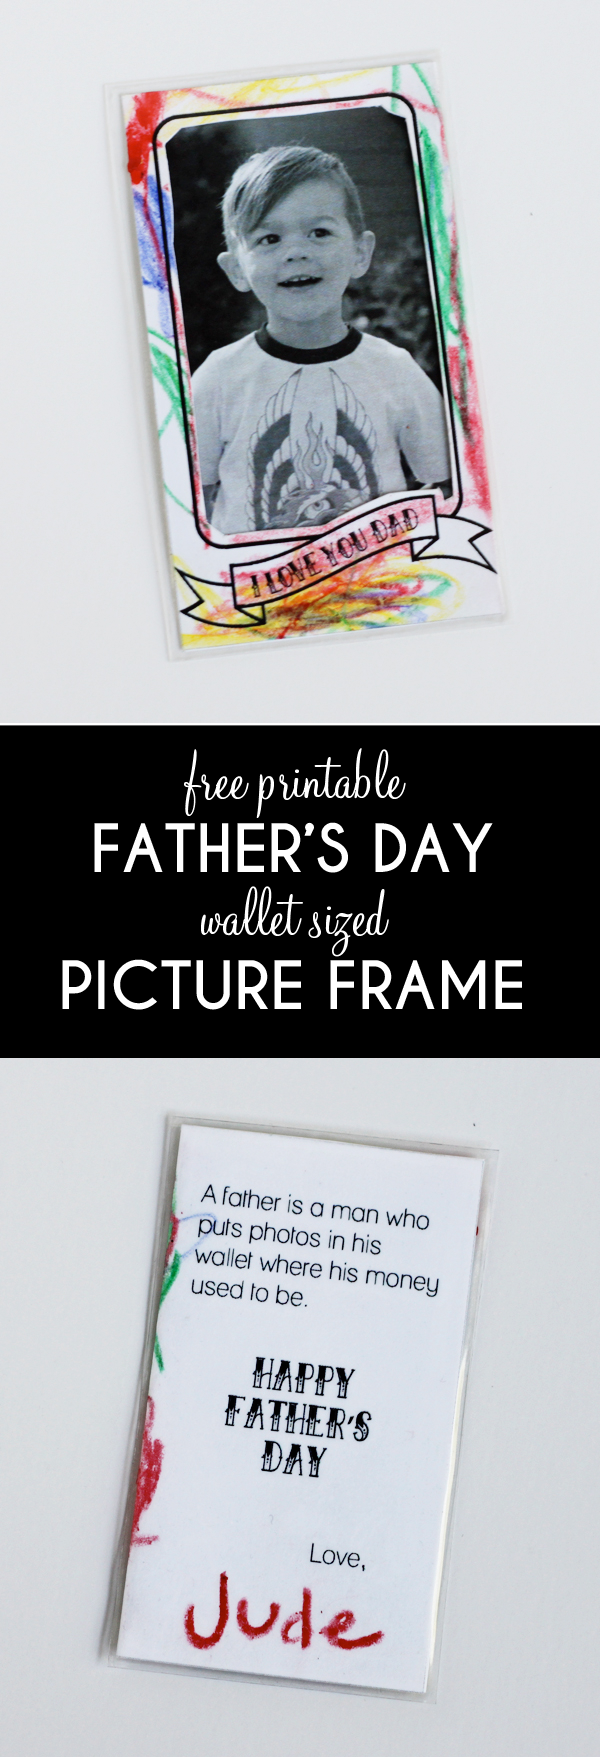 Adorable father's day printable